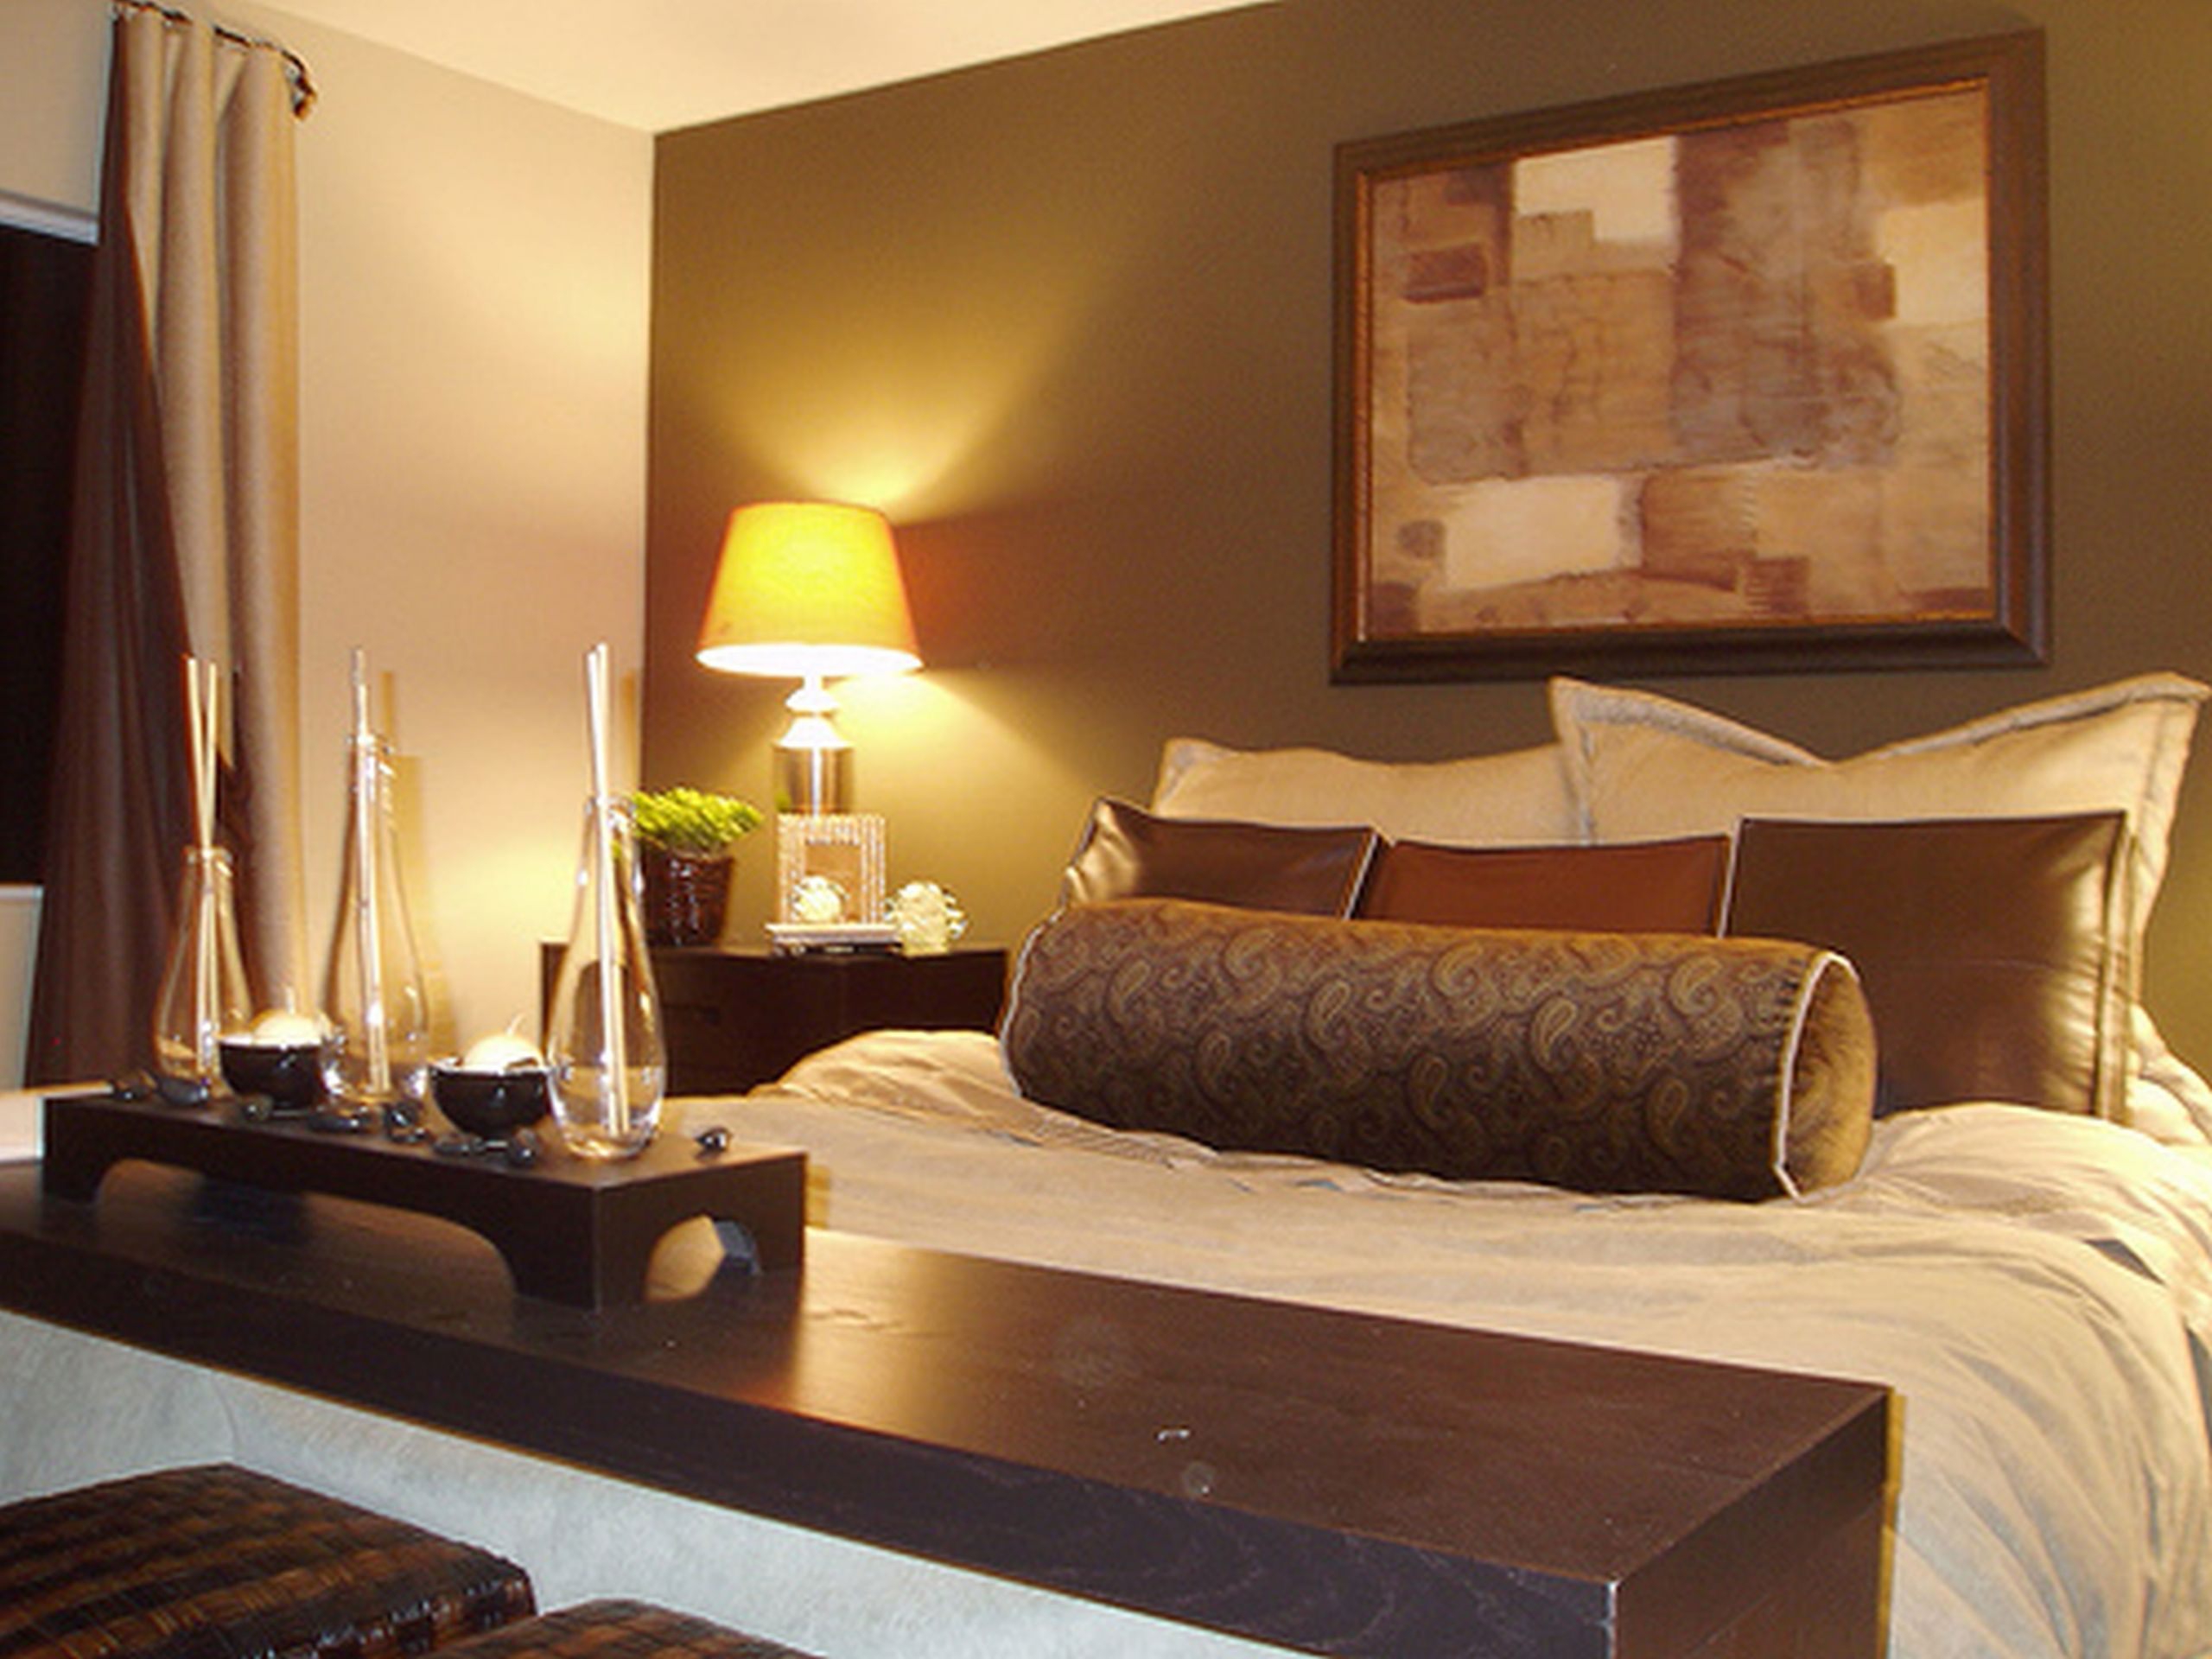 Wall Paint Ideas For Bedroom  Wall Units Ideas Interior Colors Living Room Grey Paint